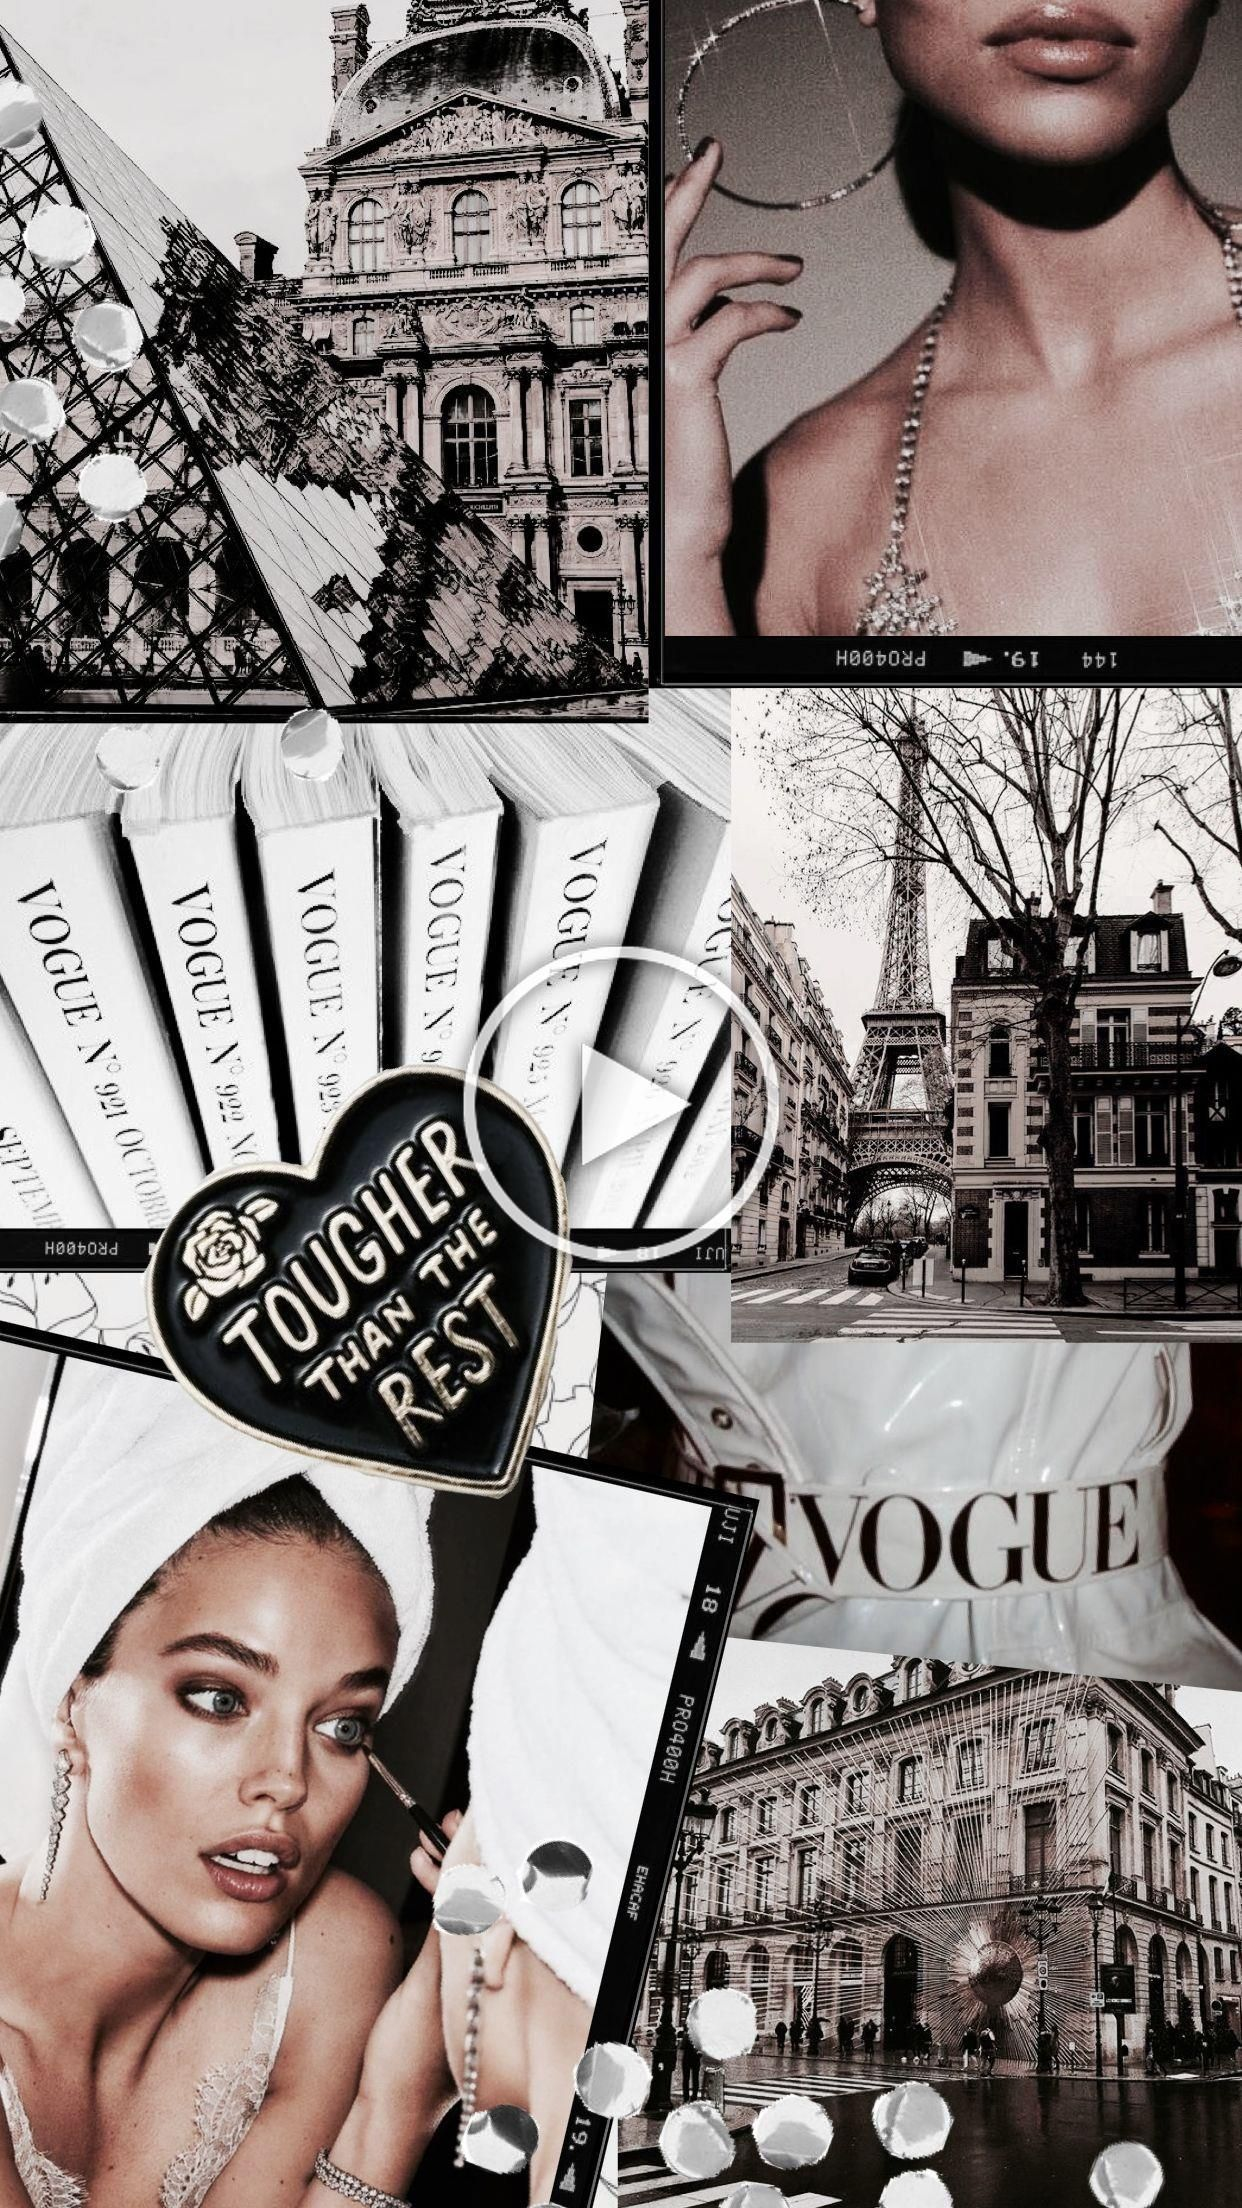 Pin By Paige Shumway On Artsy In 2020 With Images Aesthetic Pastel Wallpaper Collage Background Aesthetic Iphone Wallpaper